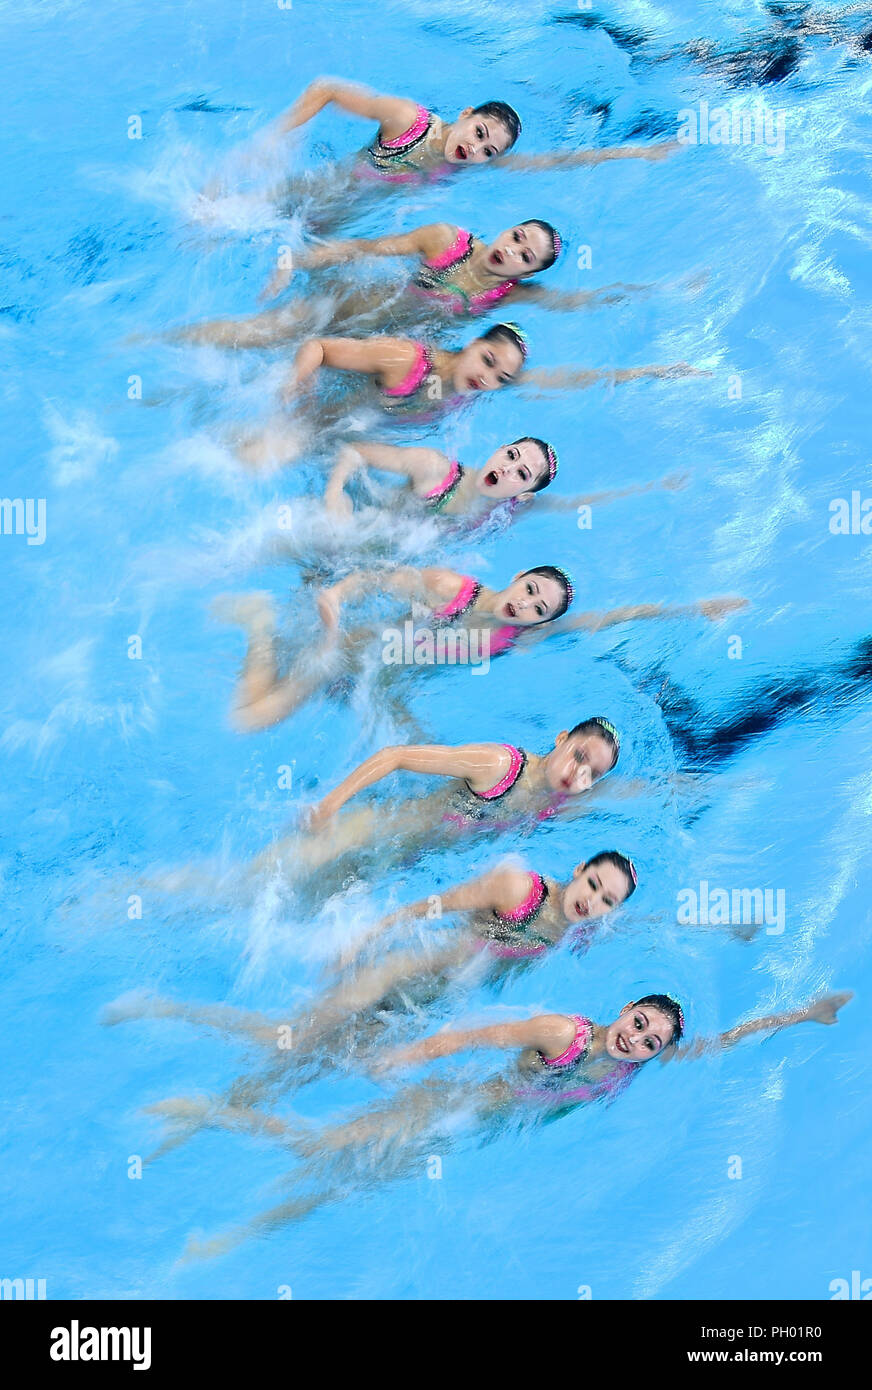 Jakarta, Indonesia. 29th Aug, 2018. Swimmers of the DPRK compete during the Artistic Swimming Women's Teams contest at the 18th Asian Games in Jakarta, Indonesia, Aug. 29, 2018. Credit: Li Xiang/Xinhua/Alamy Live News - Stock Image